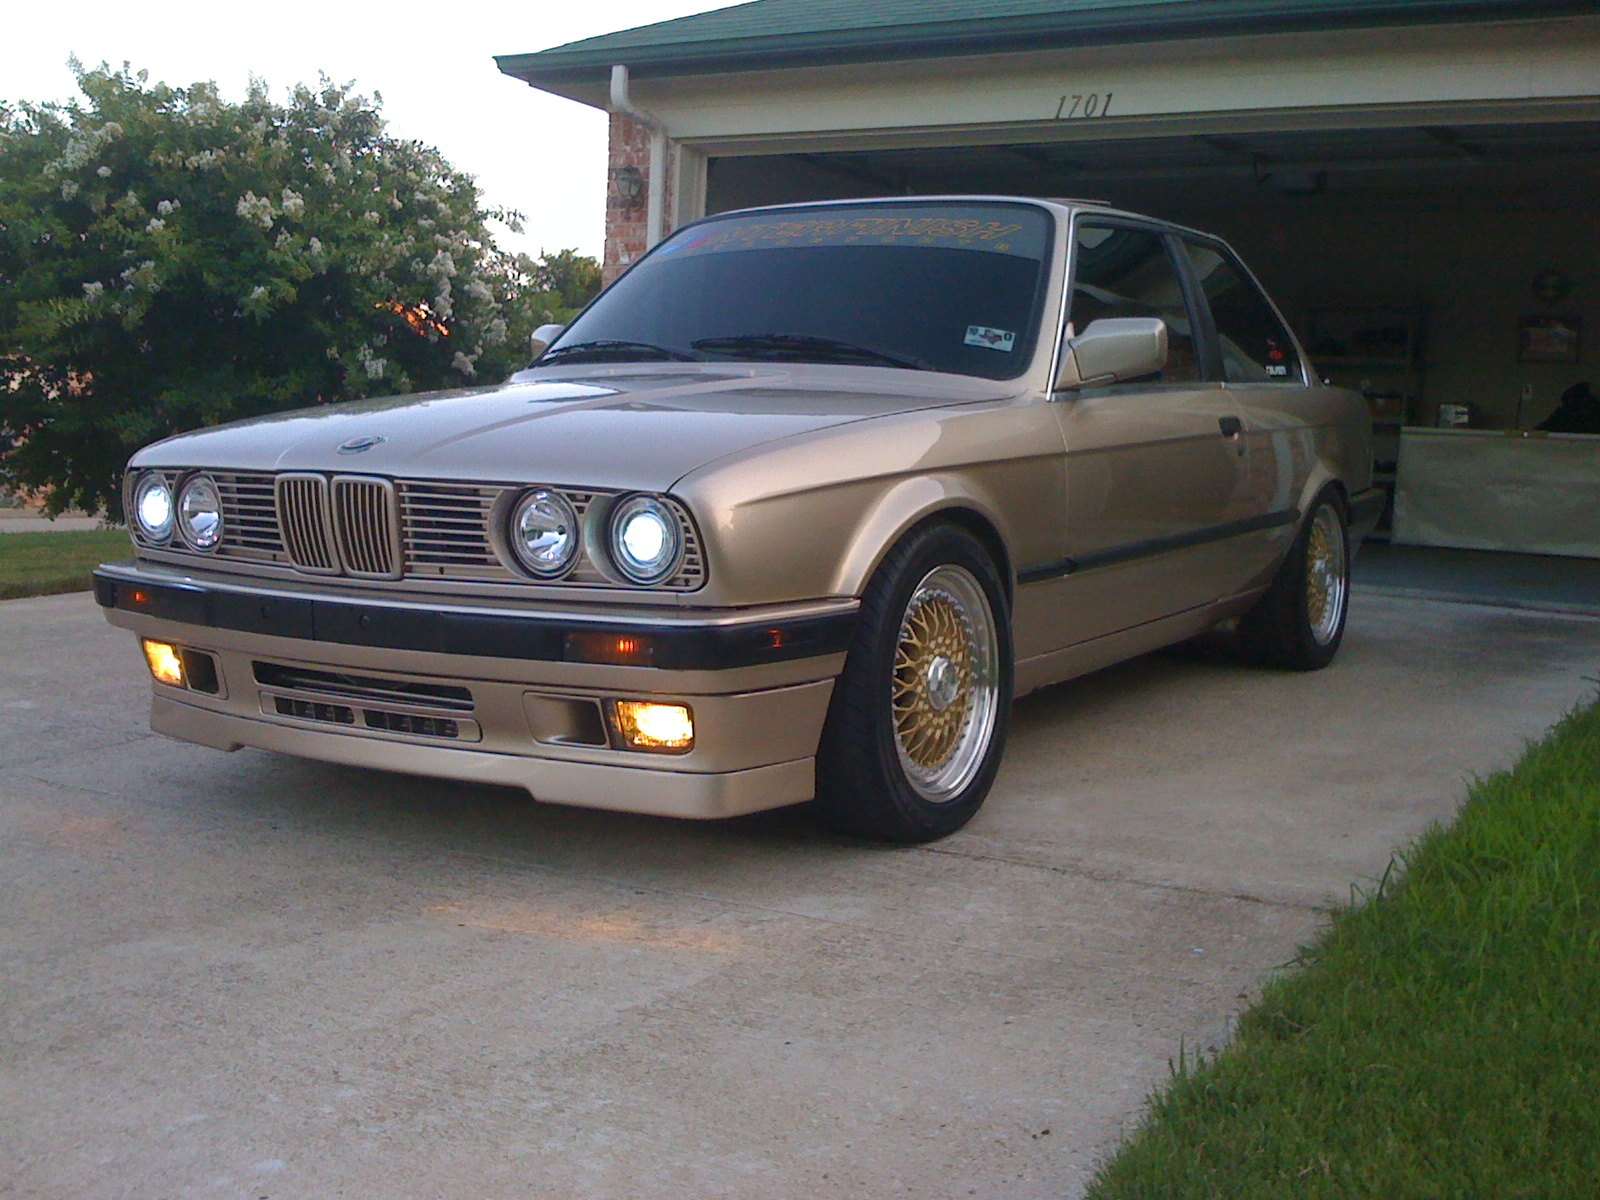 BMW 3 series 325is 1991 photo - 10